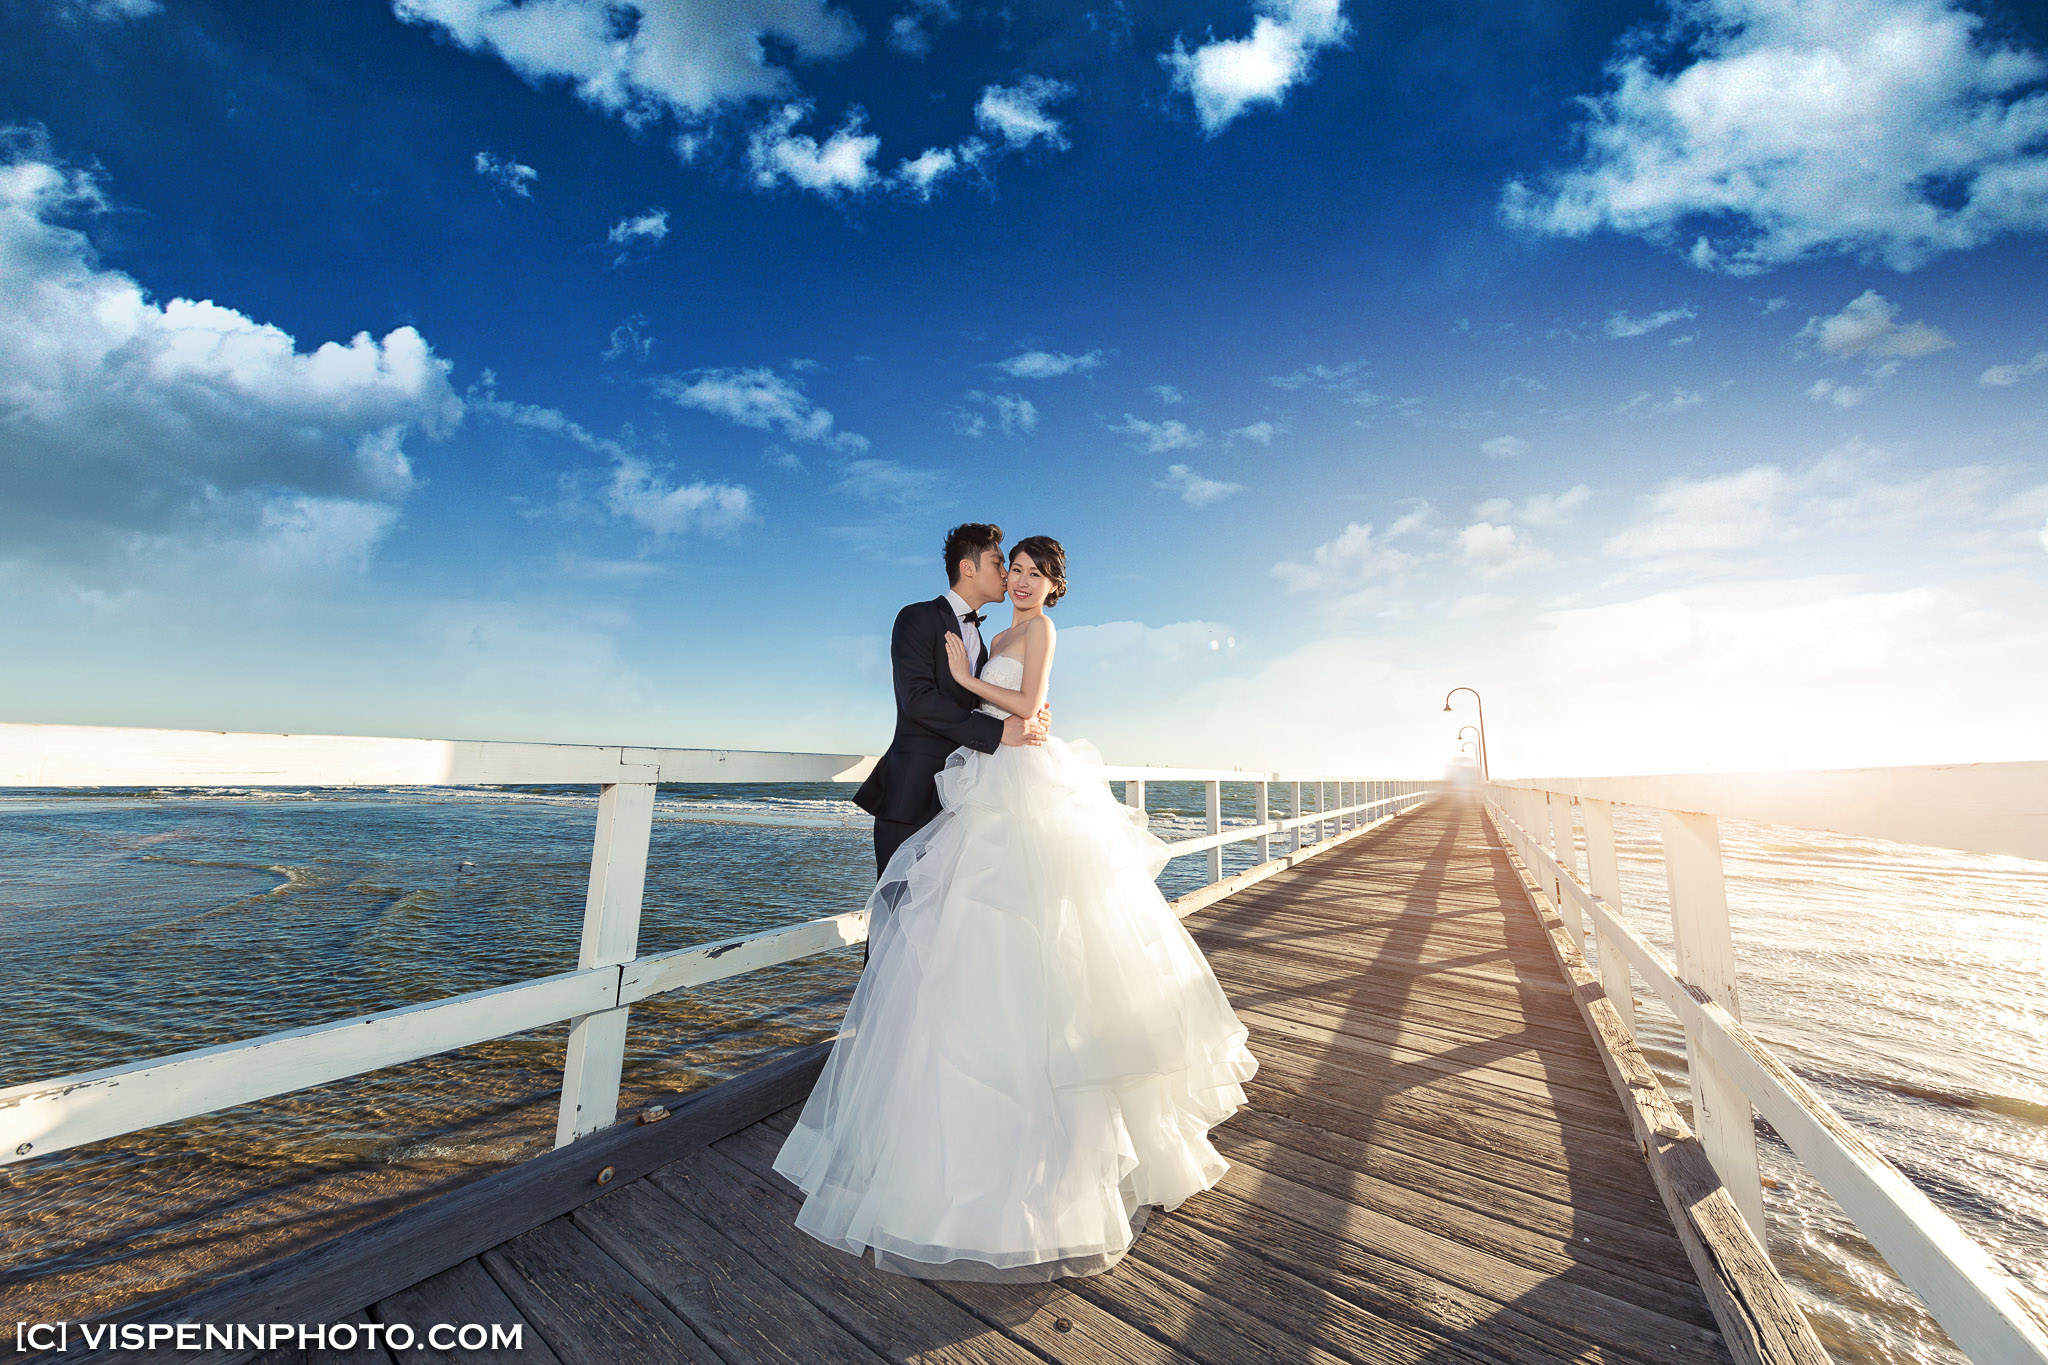 PRE WEDDING Photography Melbourne ZHPENN Cindi 2233